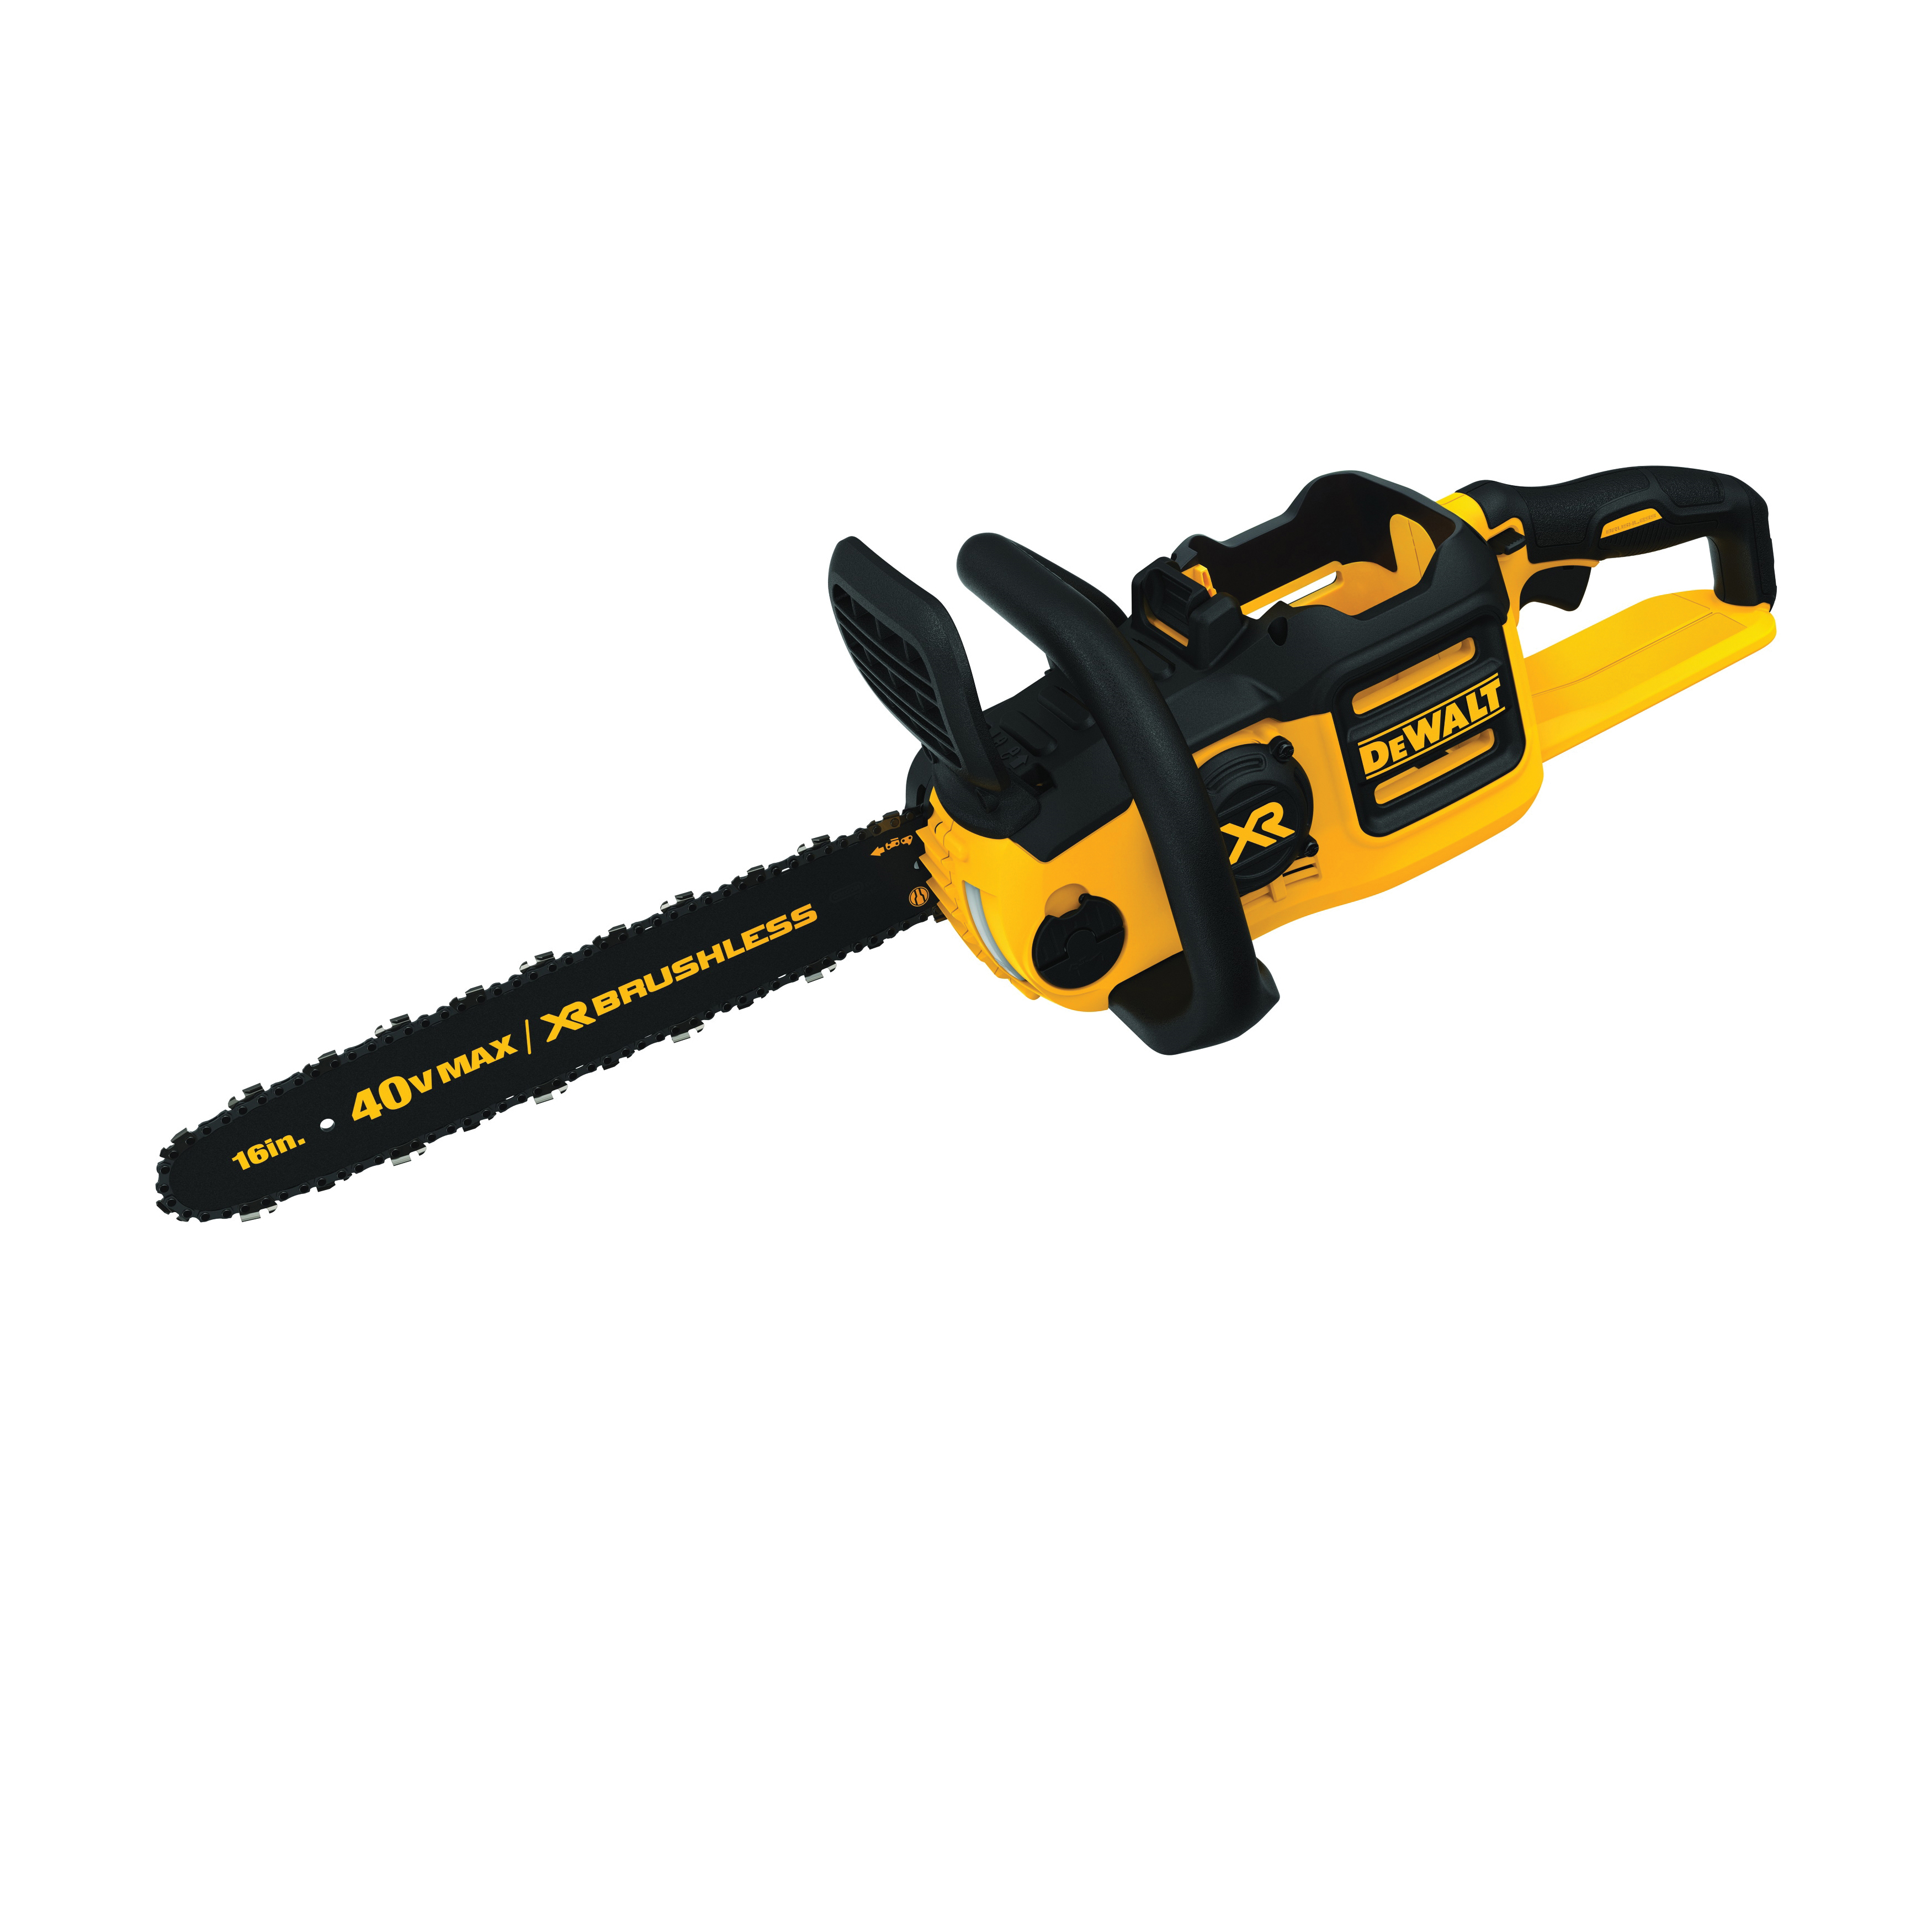 DeWALT® 40V MAX* DCCS690B XR® Brushless Cordless Chain Saw, 0.043 in Bar/Chain, 16 in L Bar/Chain, 40 V, 6 Ah Lithium-Ion Battery, Bare Tool